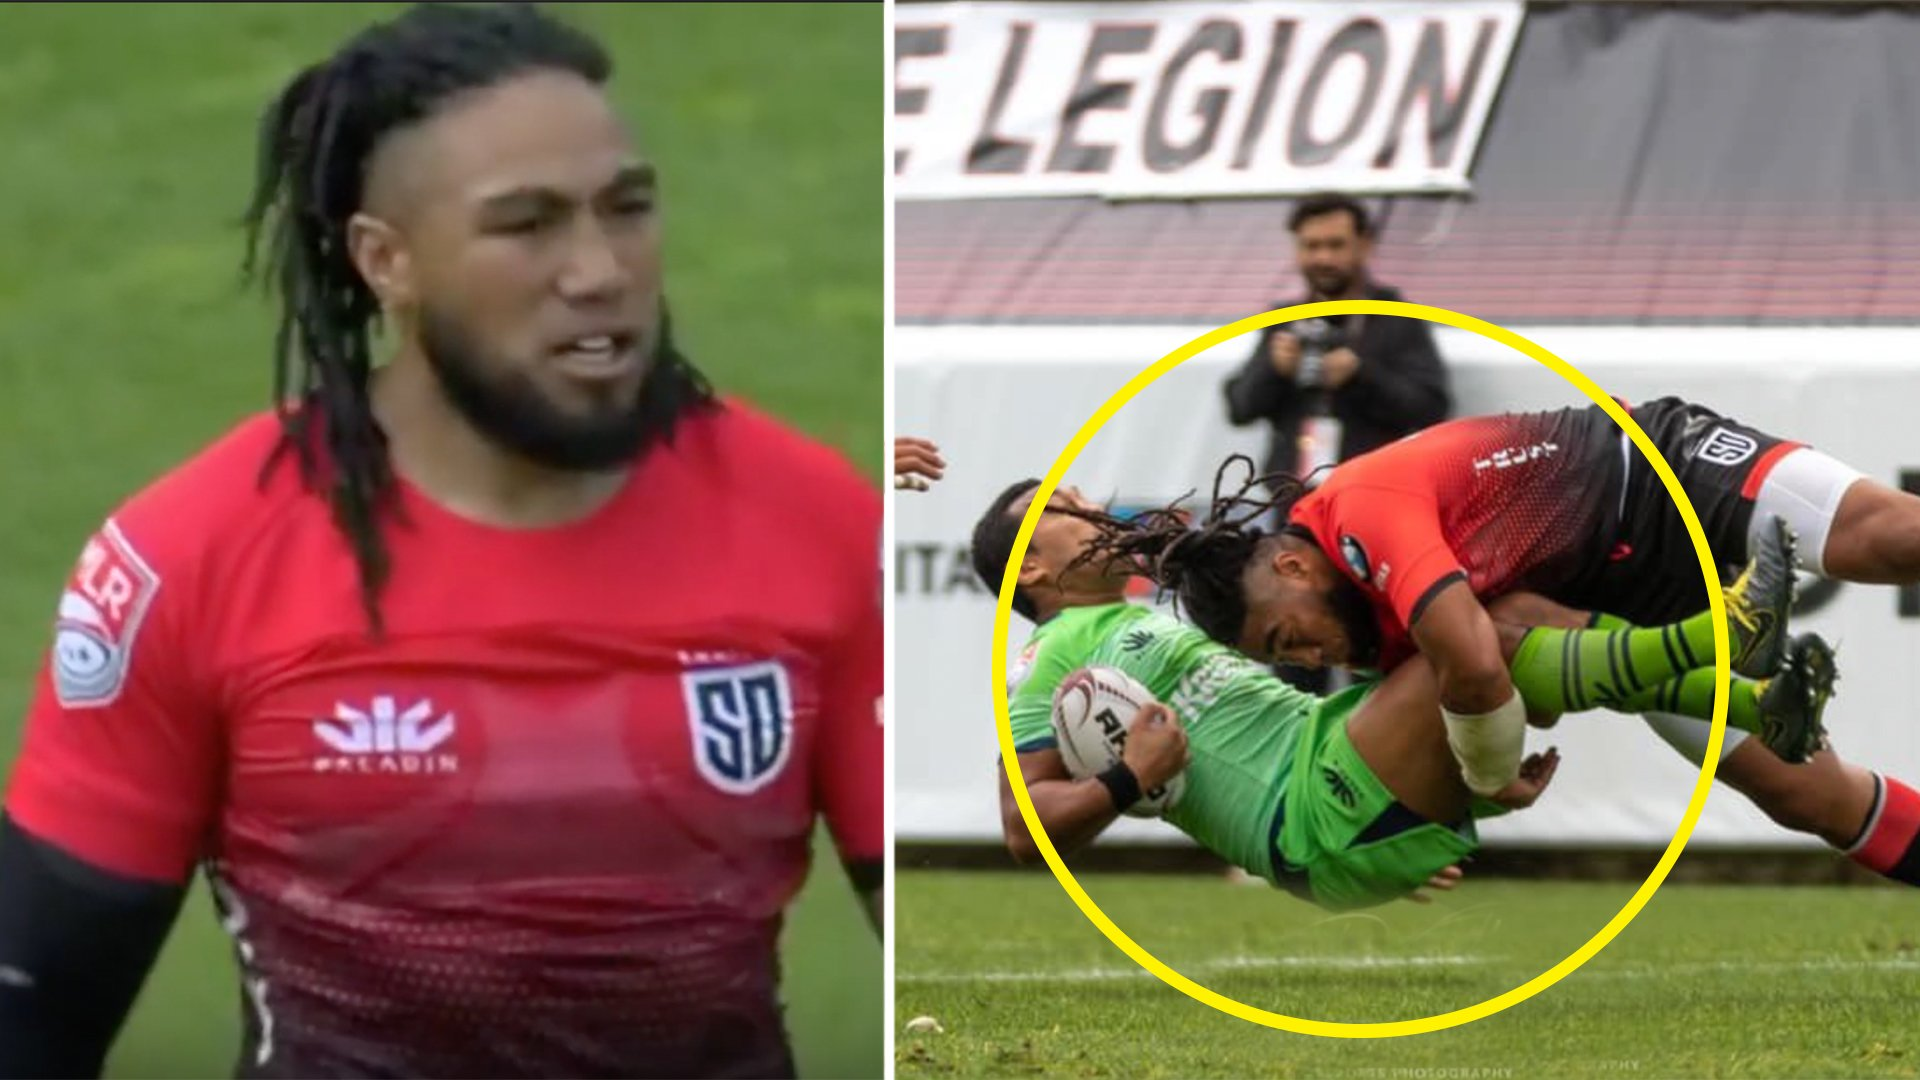 Legendary All Black Ma'a Nonu destroys everything in his Major League Rugby debut